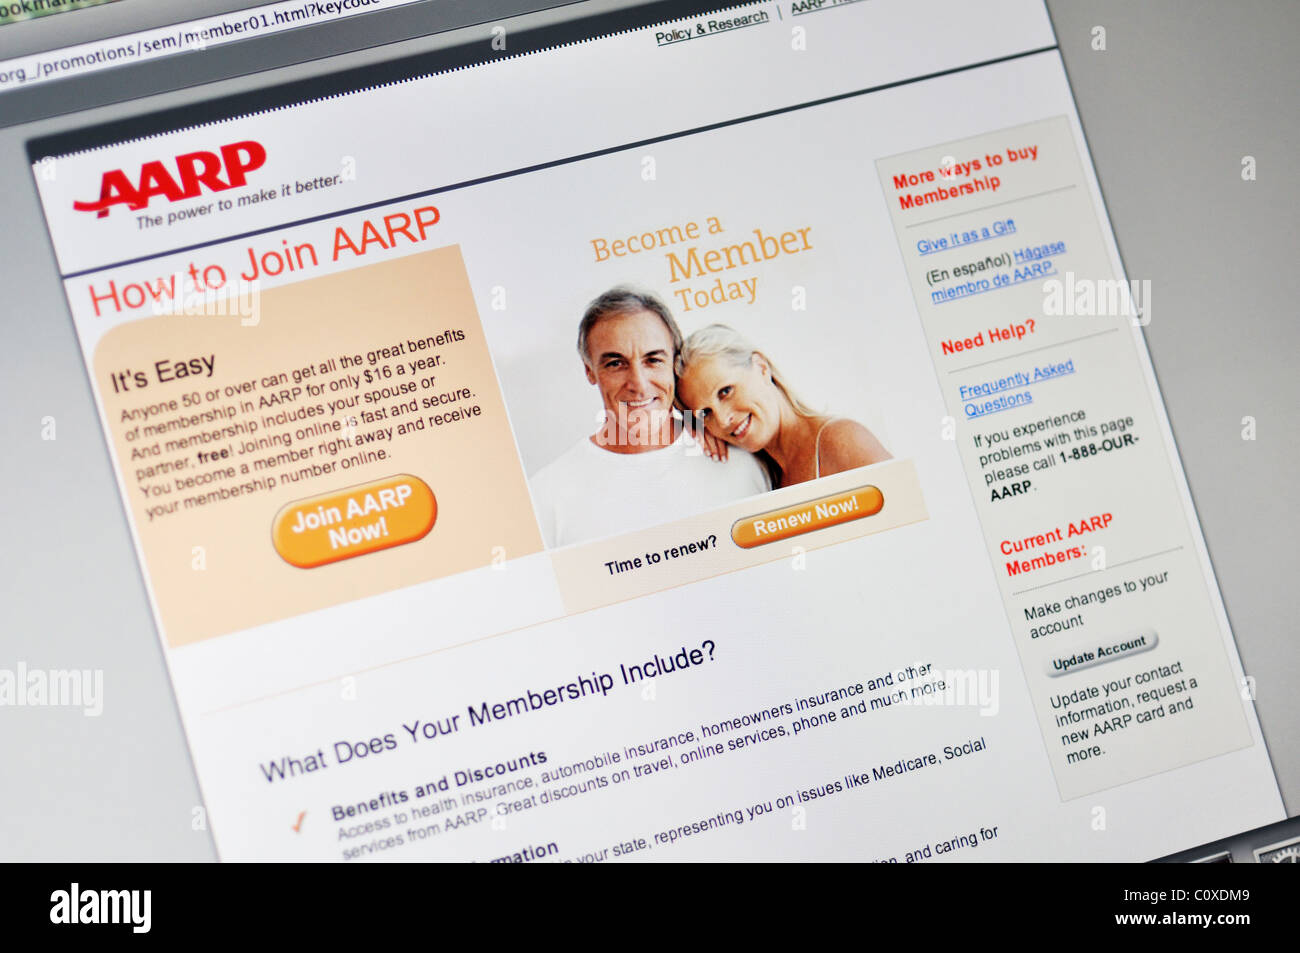 Aarp Health Insurance >> Aarp Health Insurance Website Stock Photo 35002249 Alamy